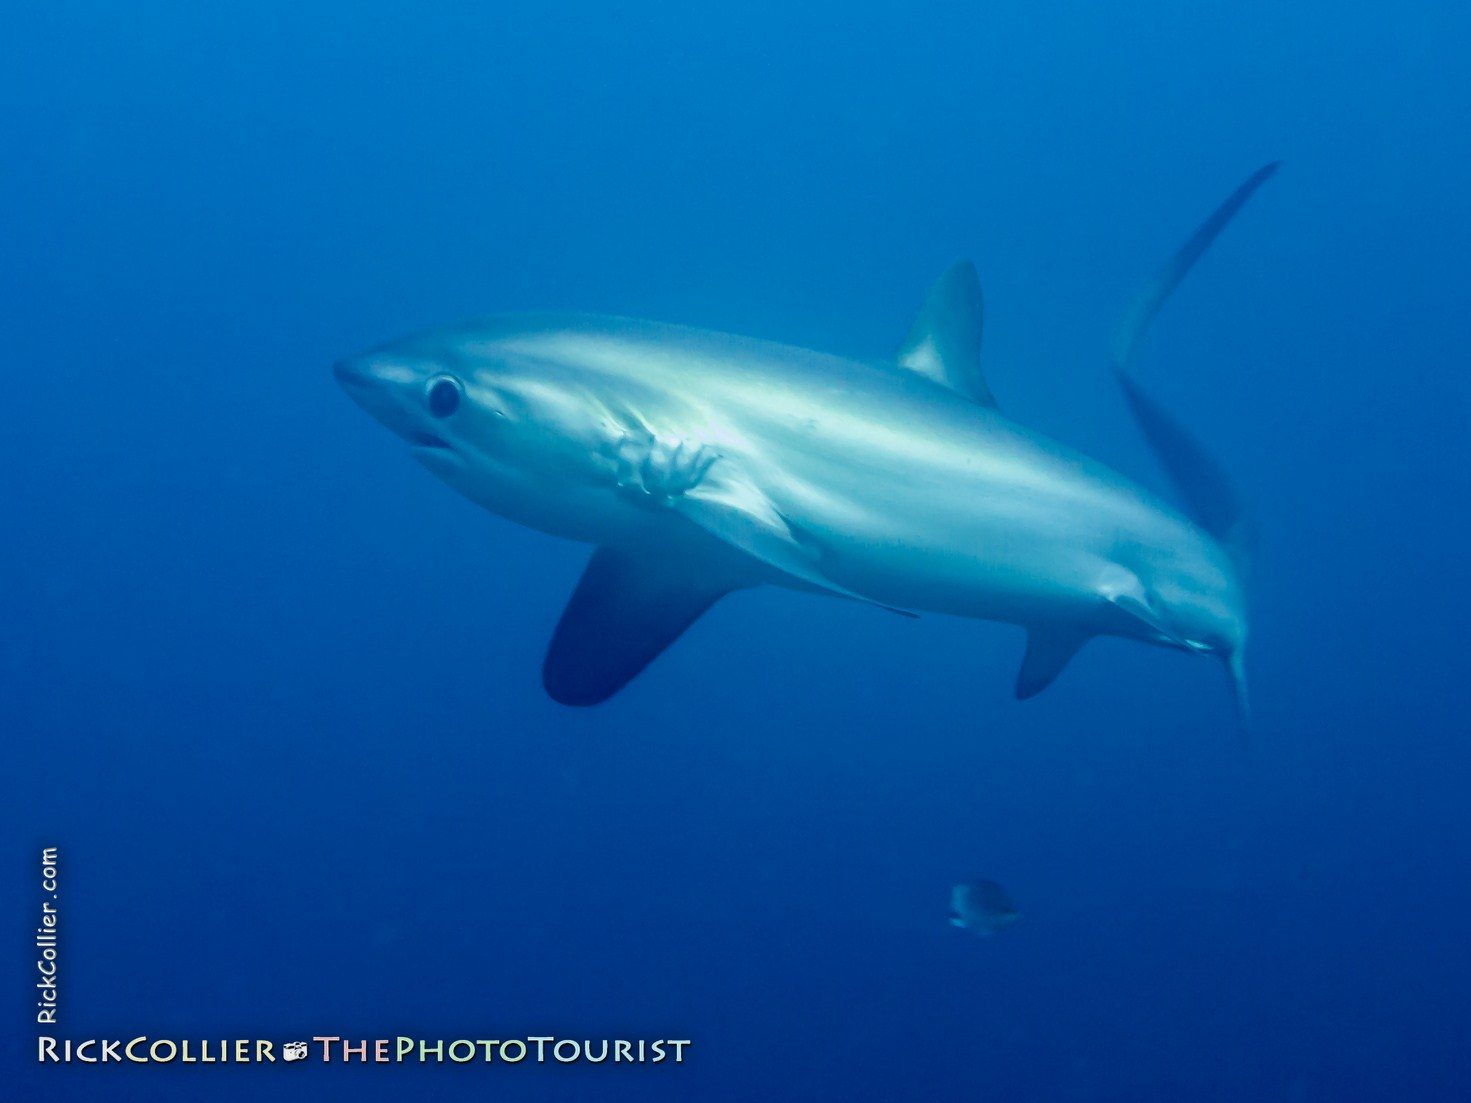 A thresher shark turns to pass the photographer at Monad Shoal, near Malapascua Island, the Philippines